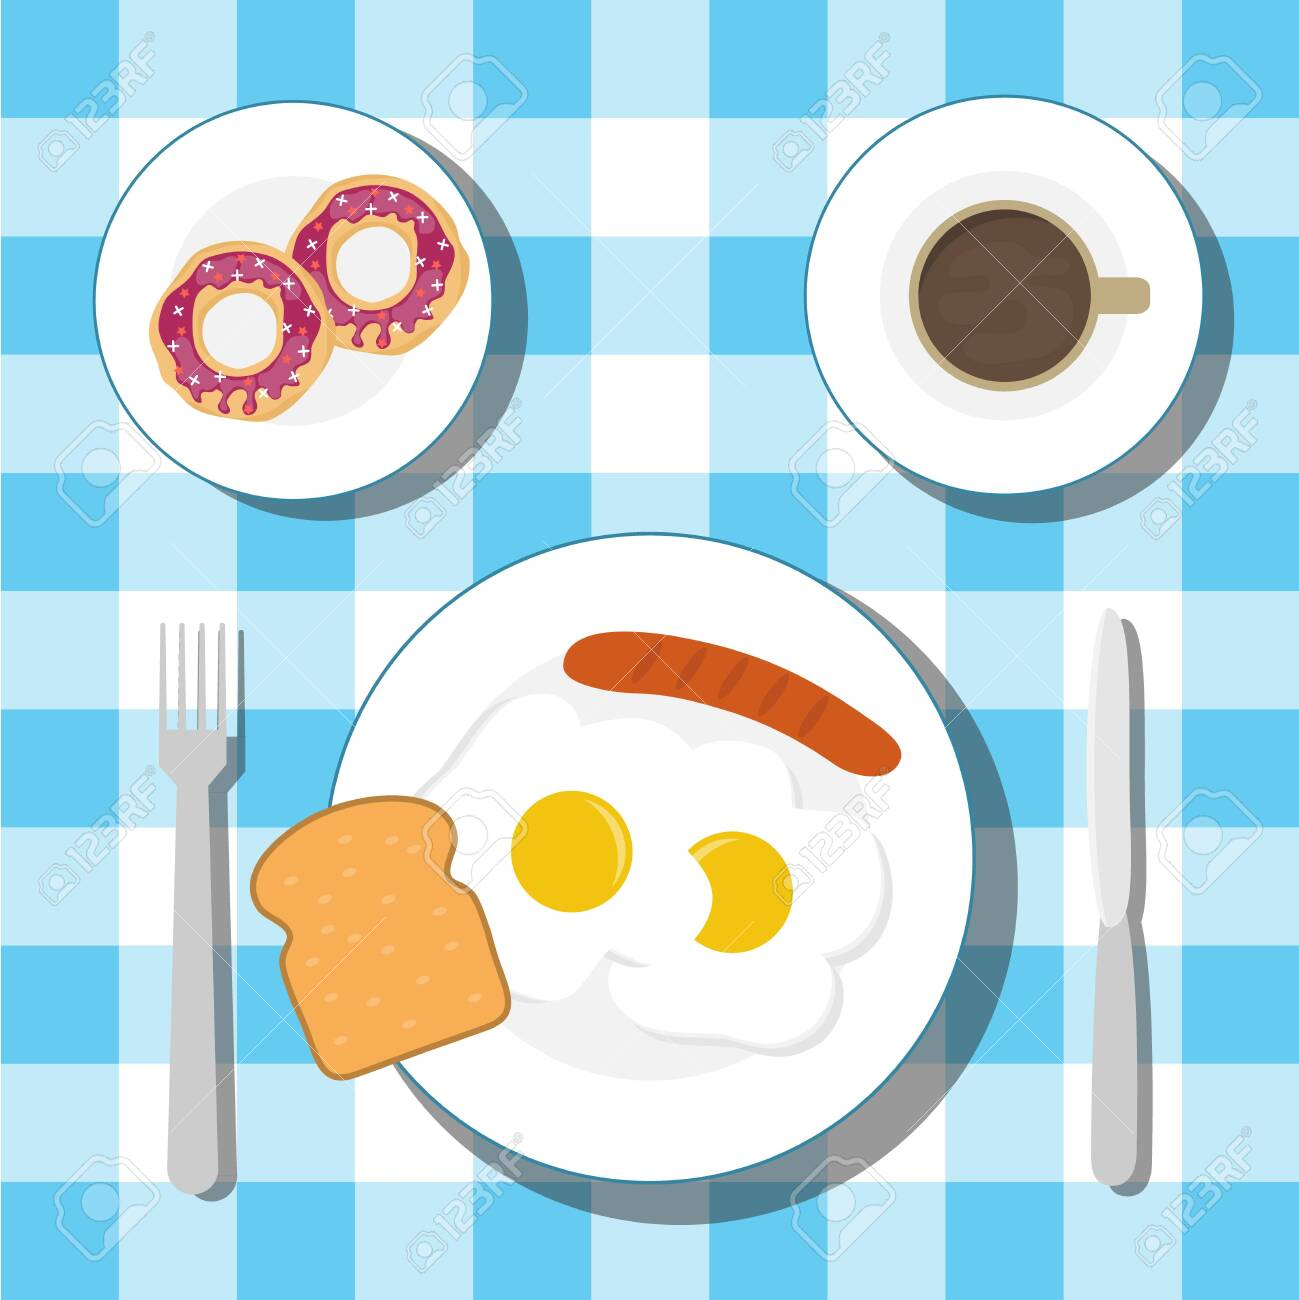 Breakfast on the table with a tablecloth. Breakfast of fried eggs with sausage and coffee with donuts. Vector. - 134877644